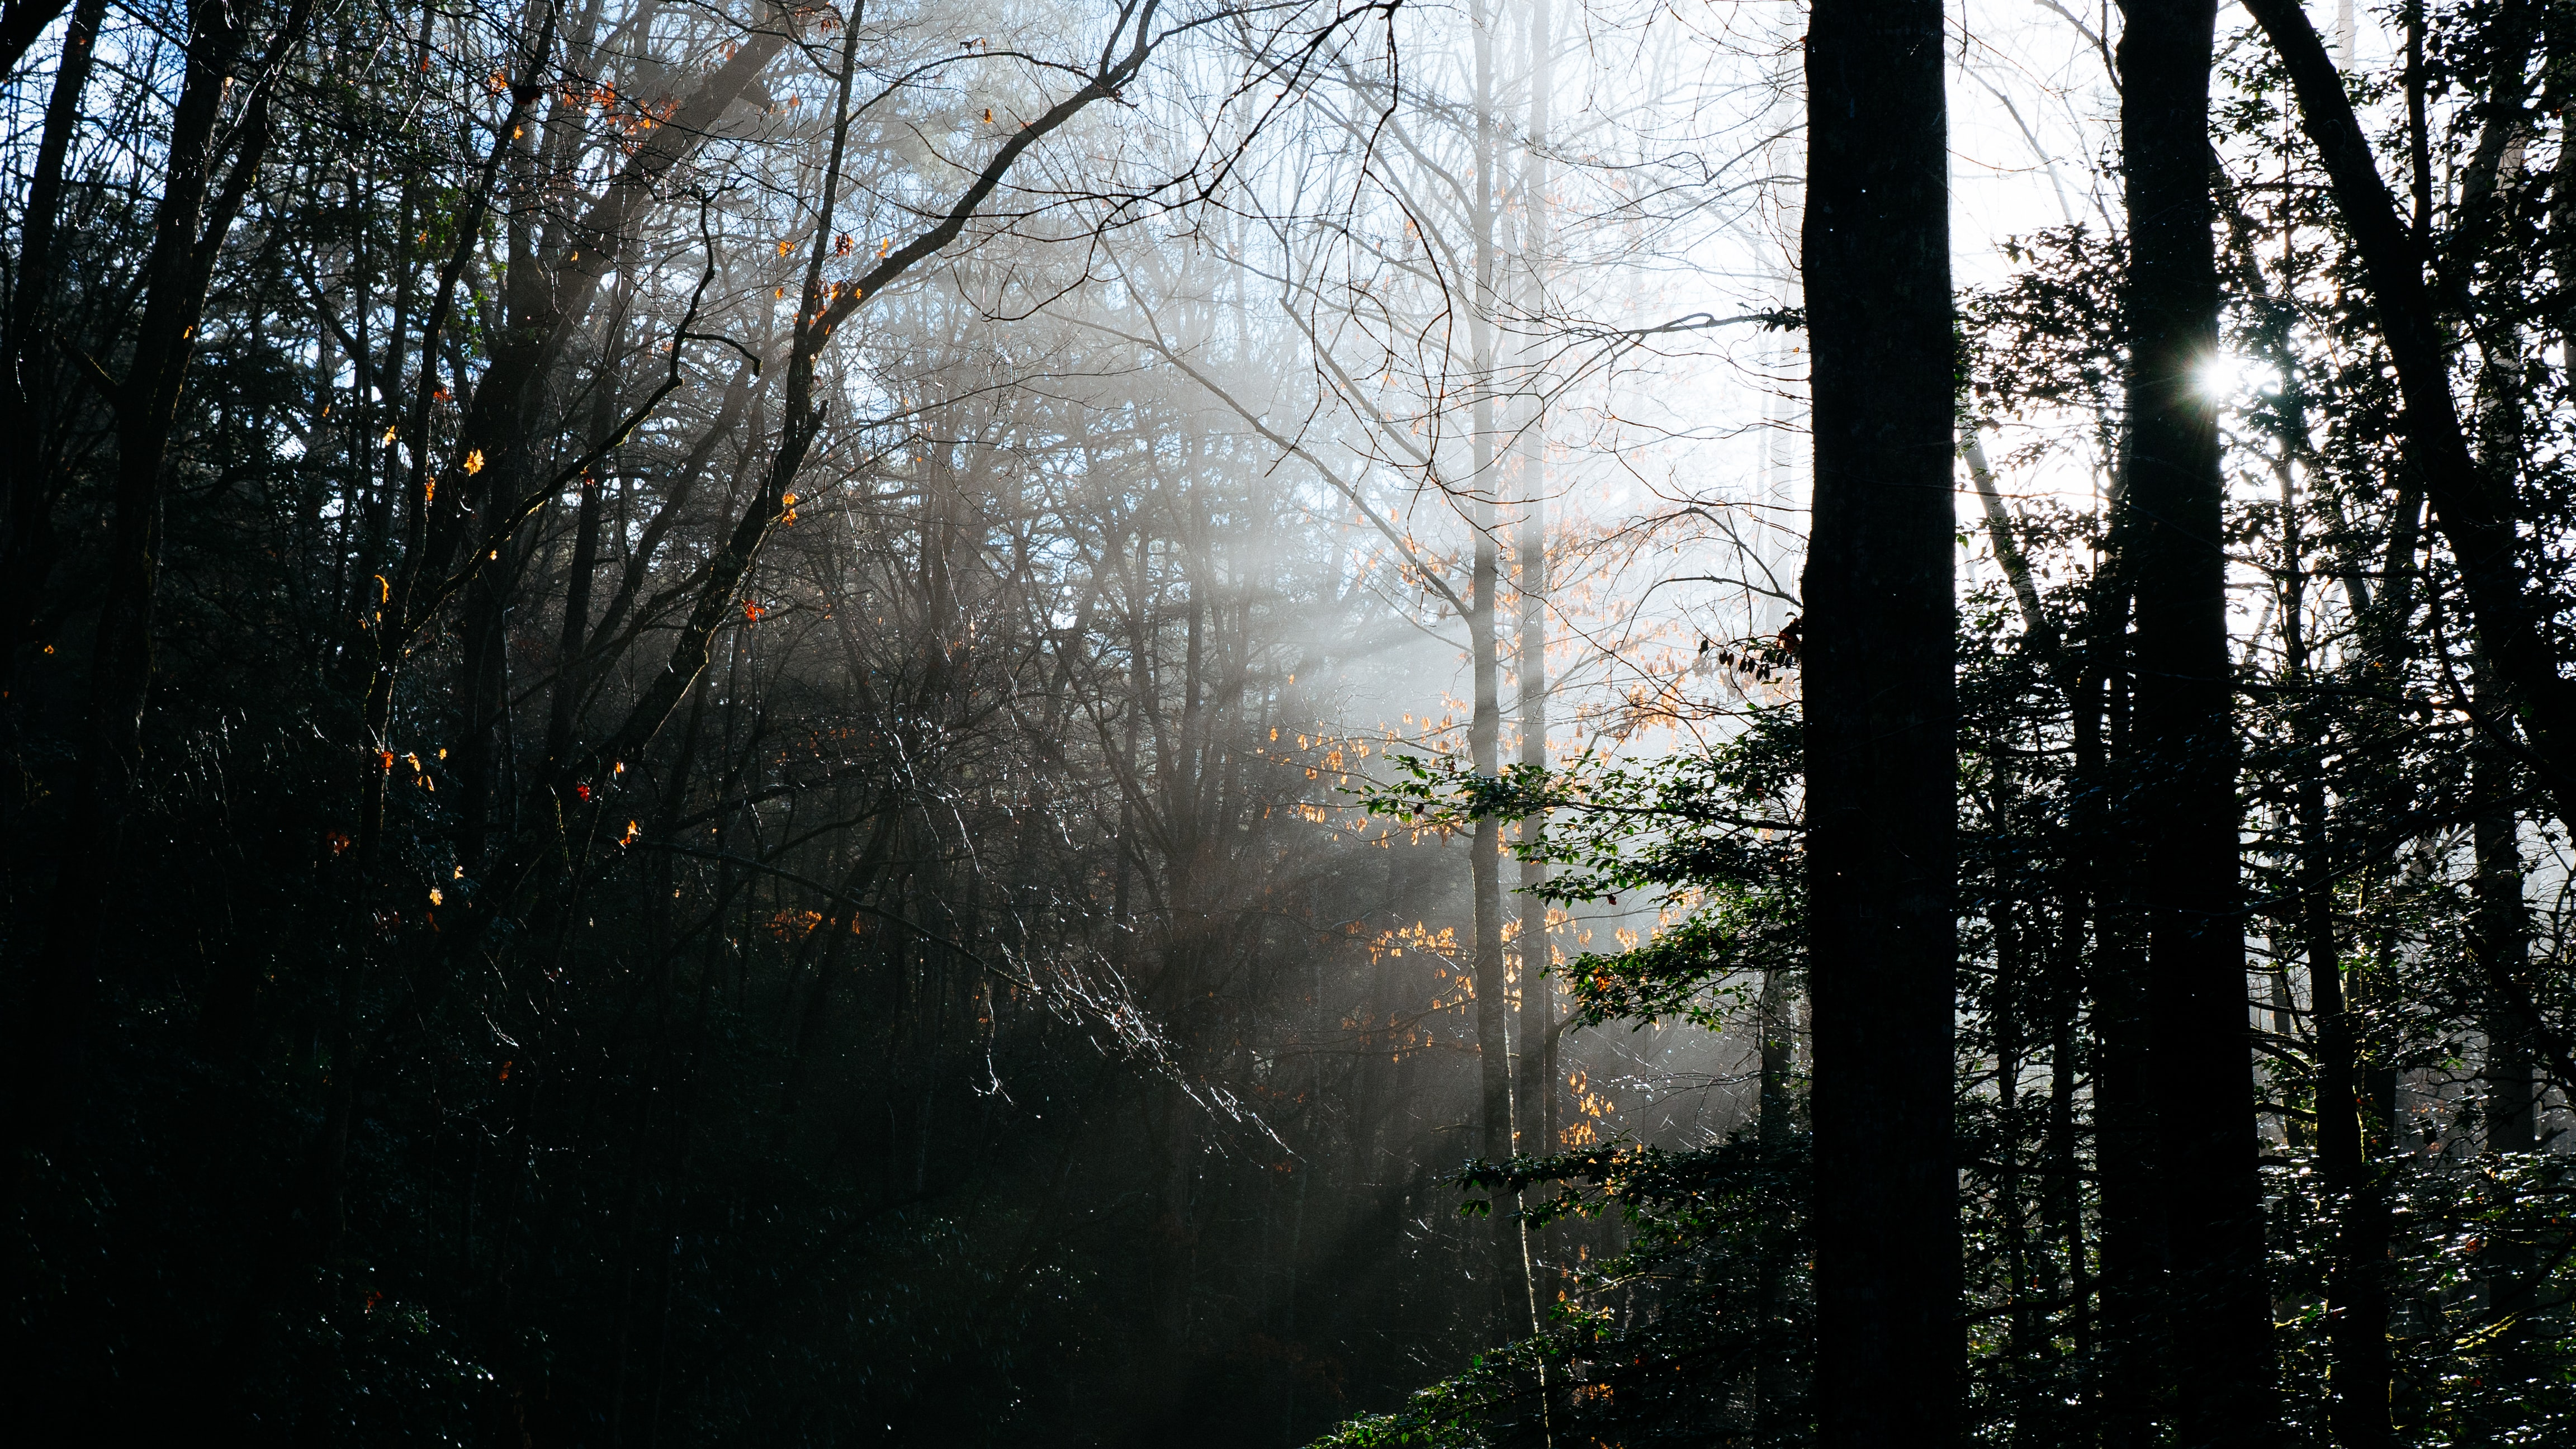 Sunlight breaking through the branches in a dark forest